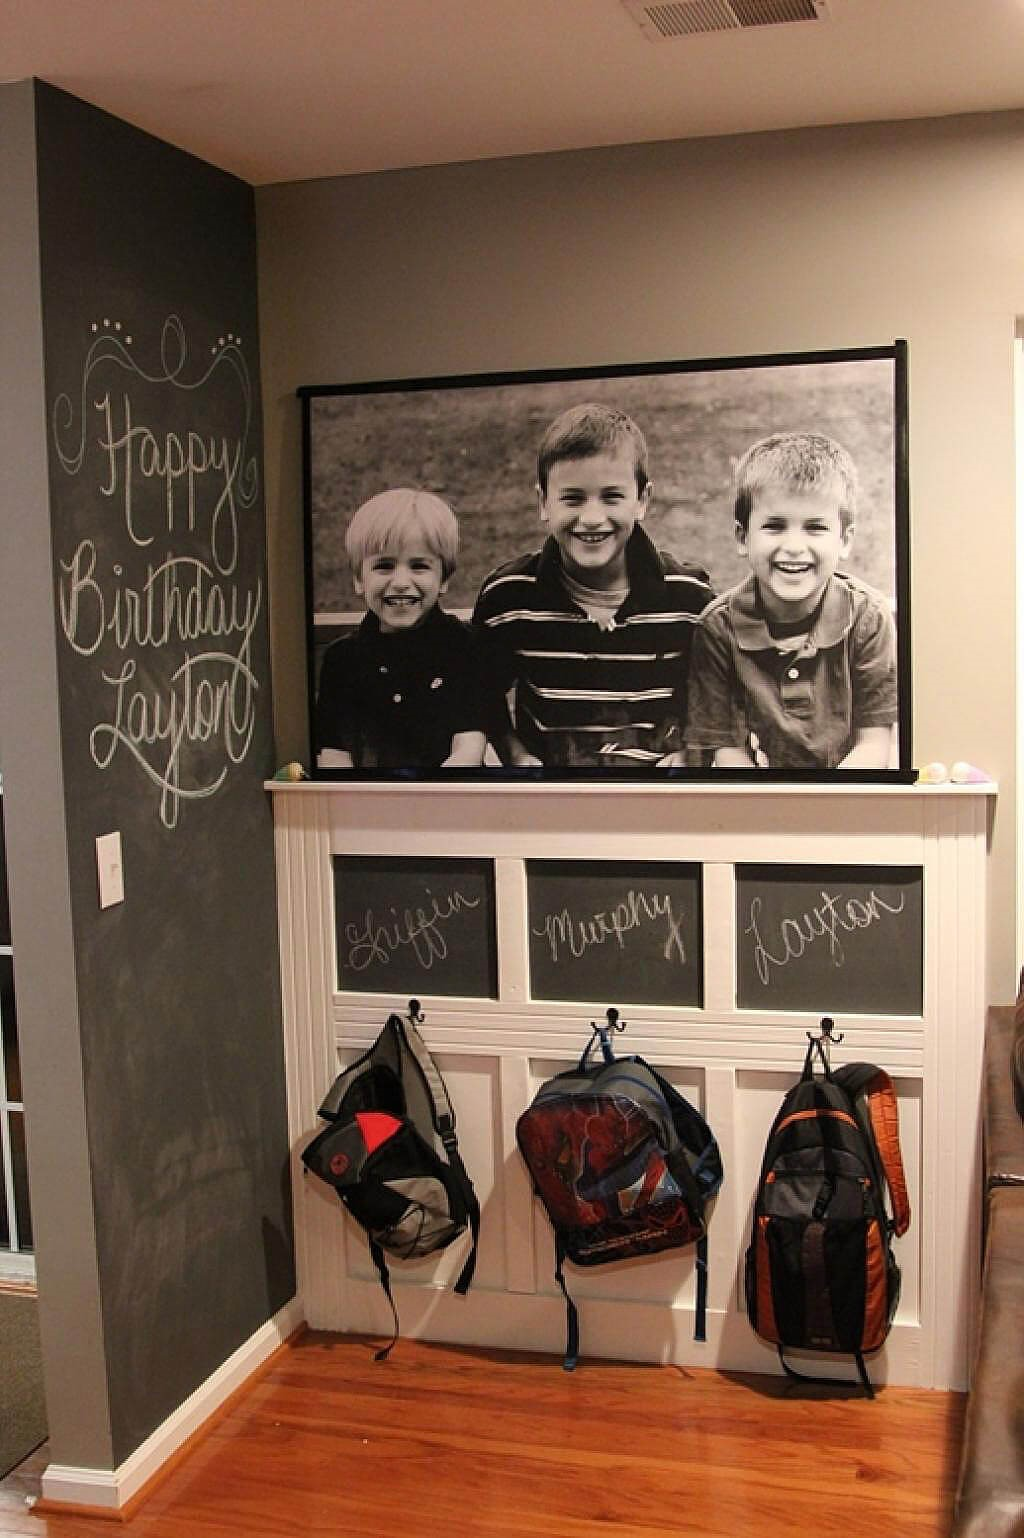 1 Chalkboard Wallpaper for An Impressive Mudroom Simphome com